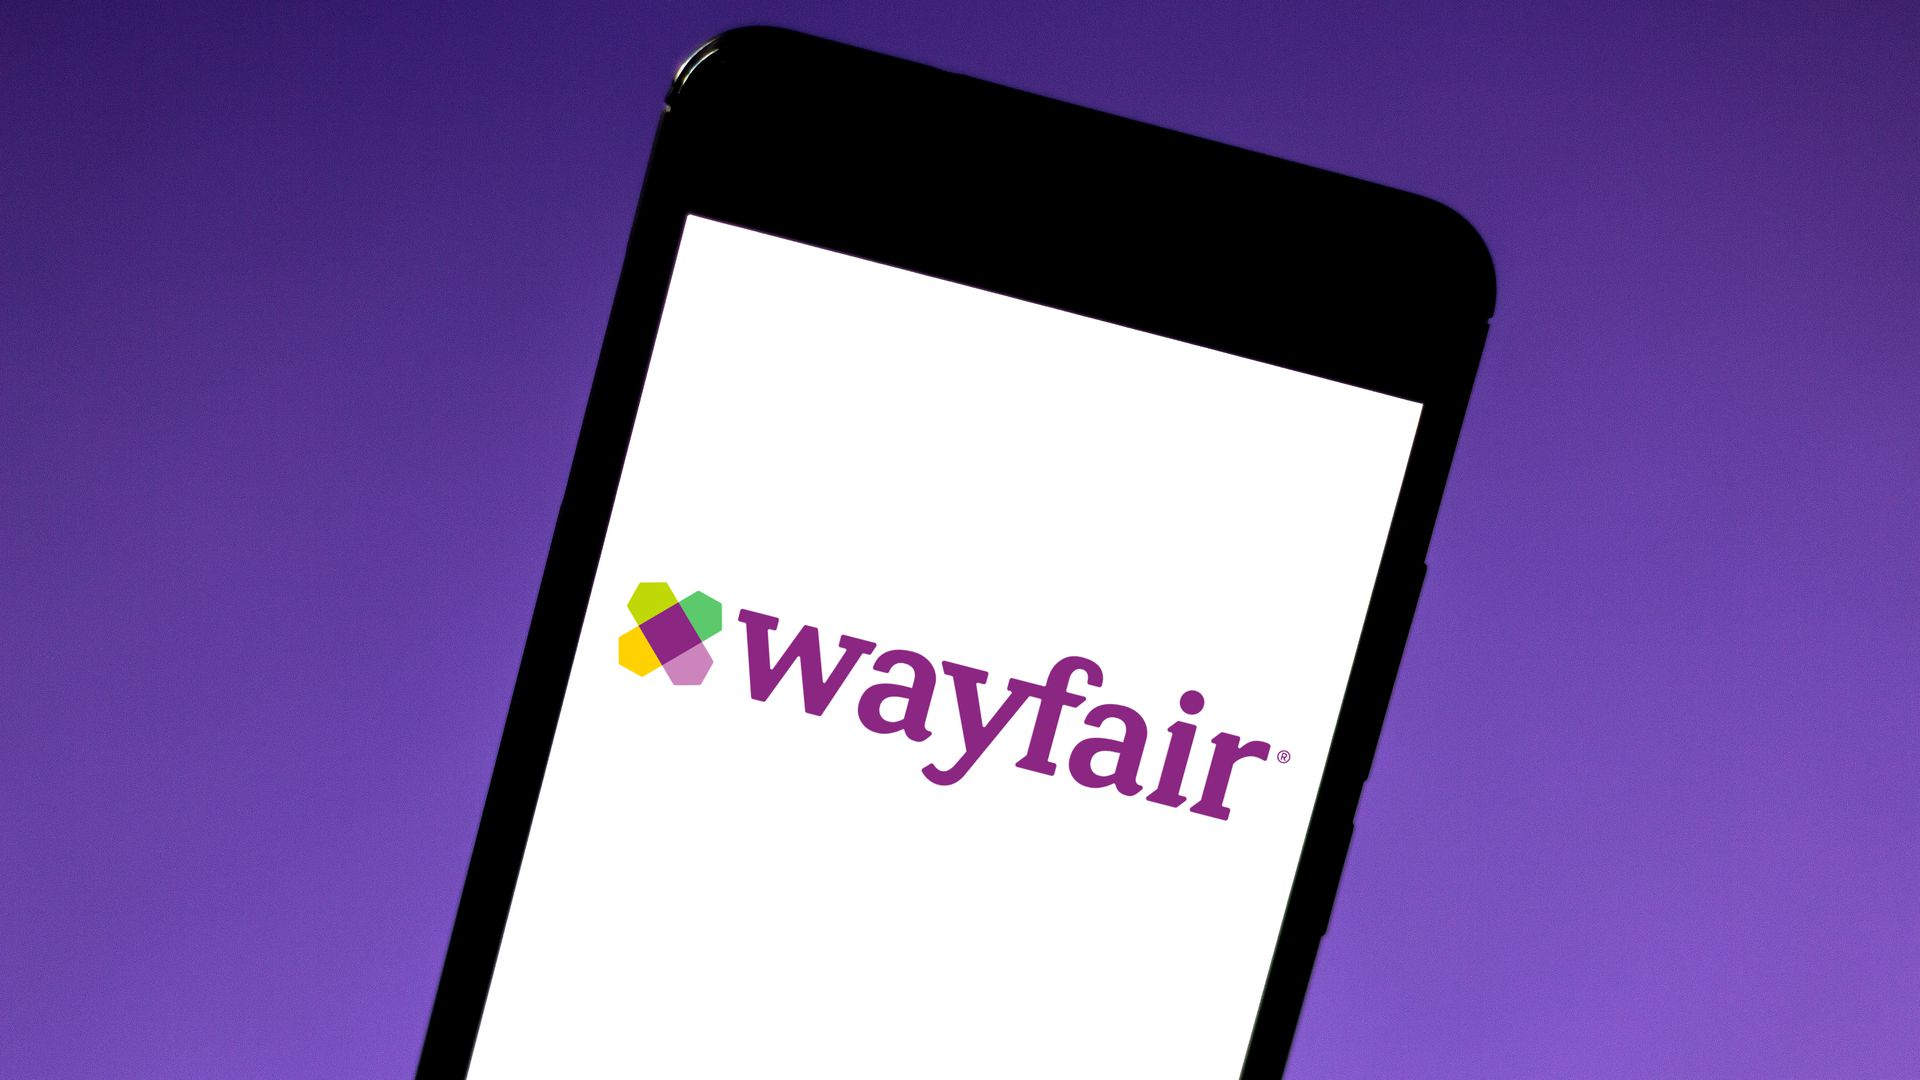 the wayfair logo on a phone